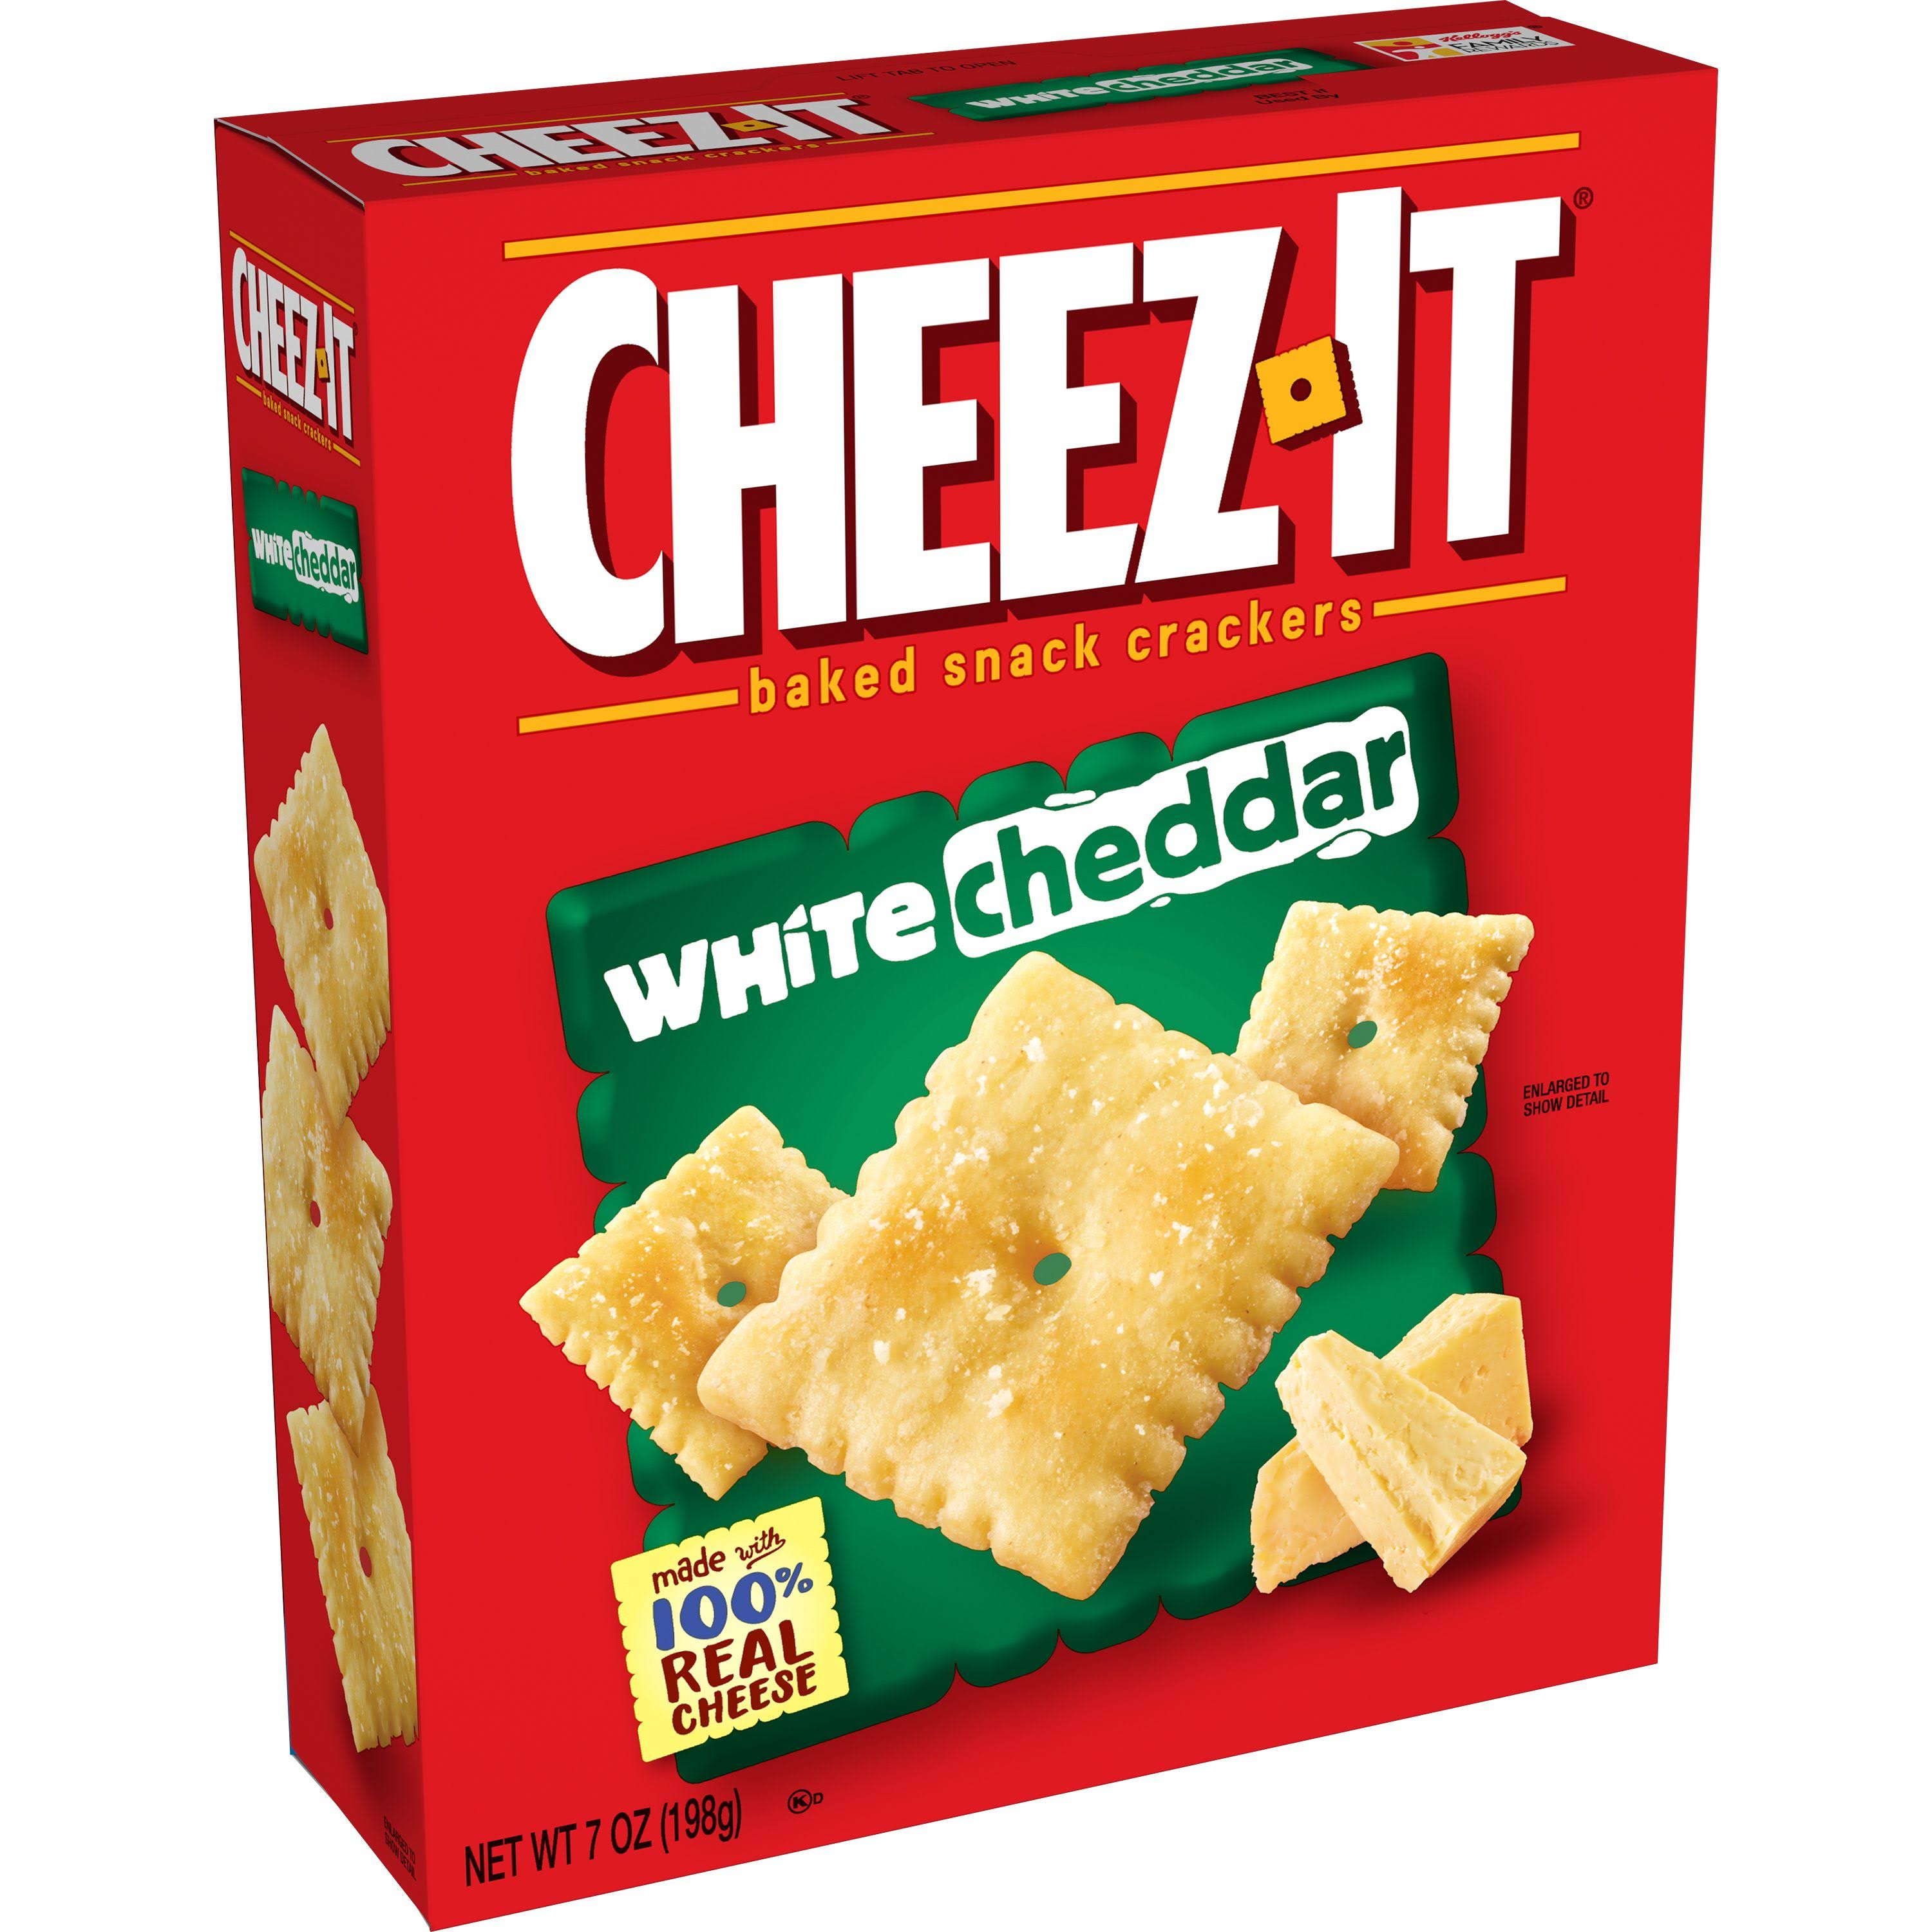 Cheez it Baked Snack Crackers - 7oz, White Cheddar